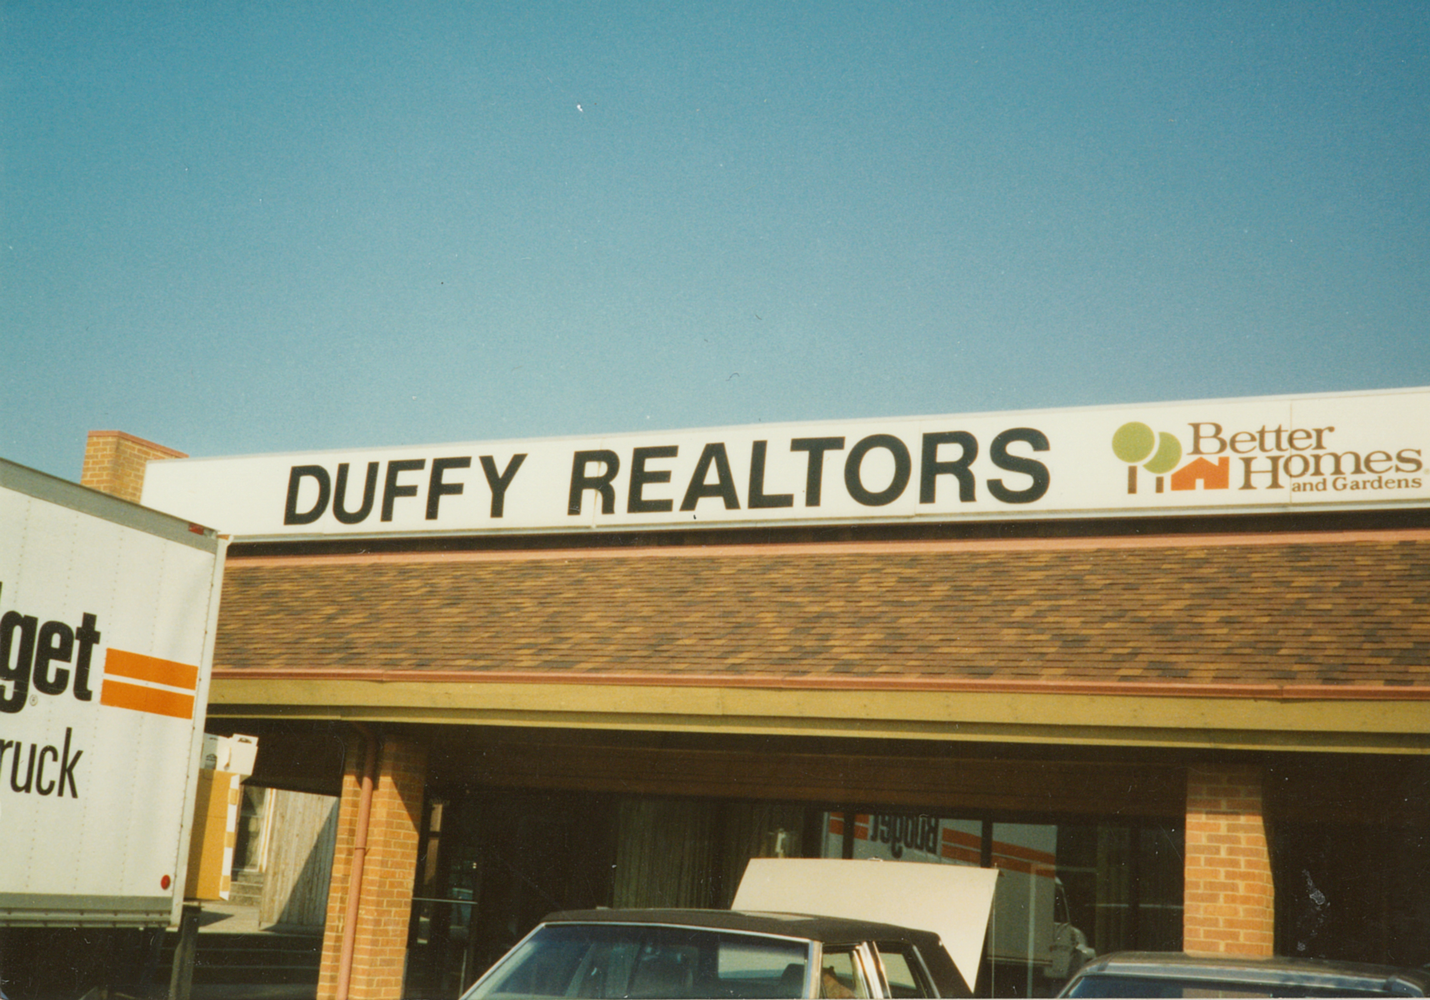 Duffy Realtors - Better Homes and Gardens